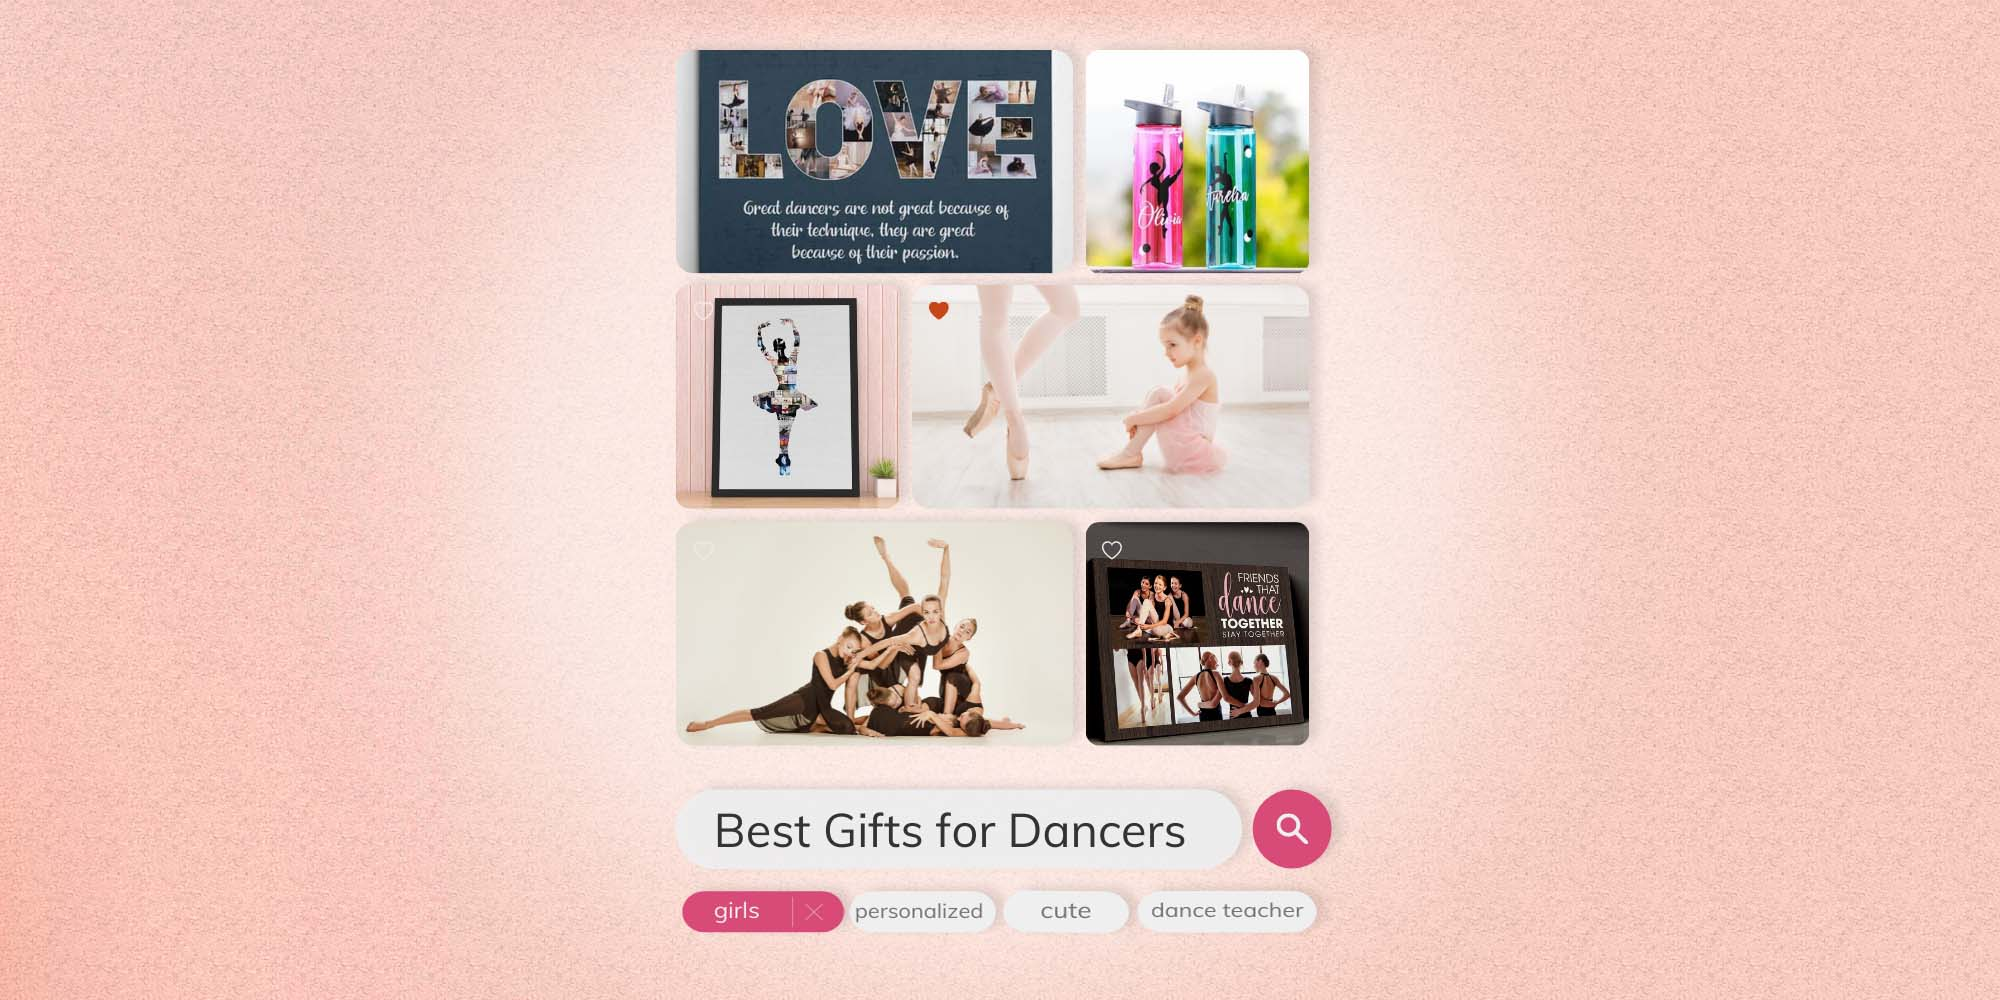 30+ Best Gifts for Dancers That They Really Need (2021)